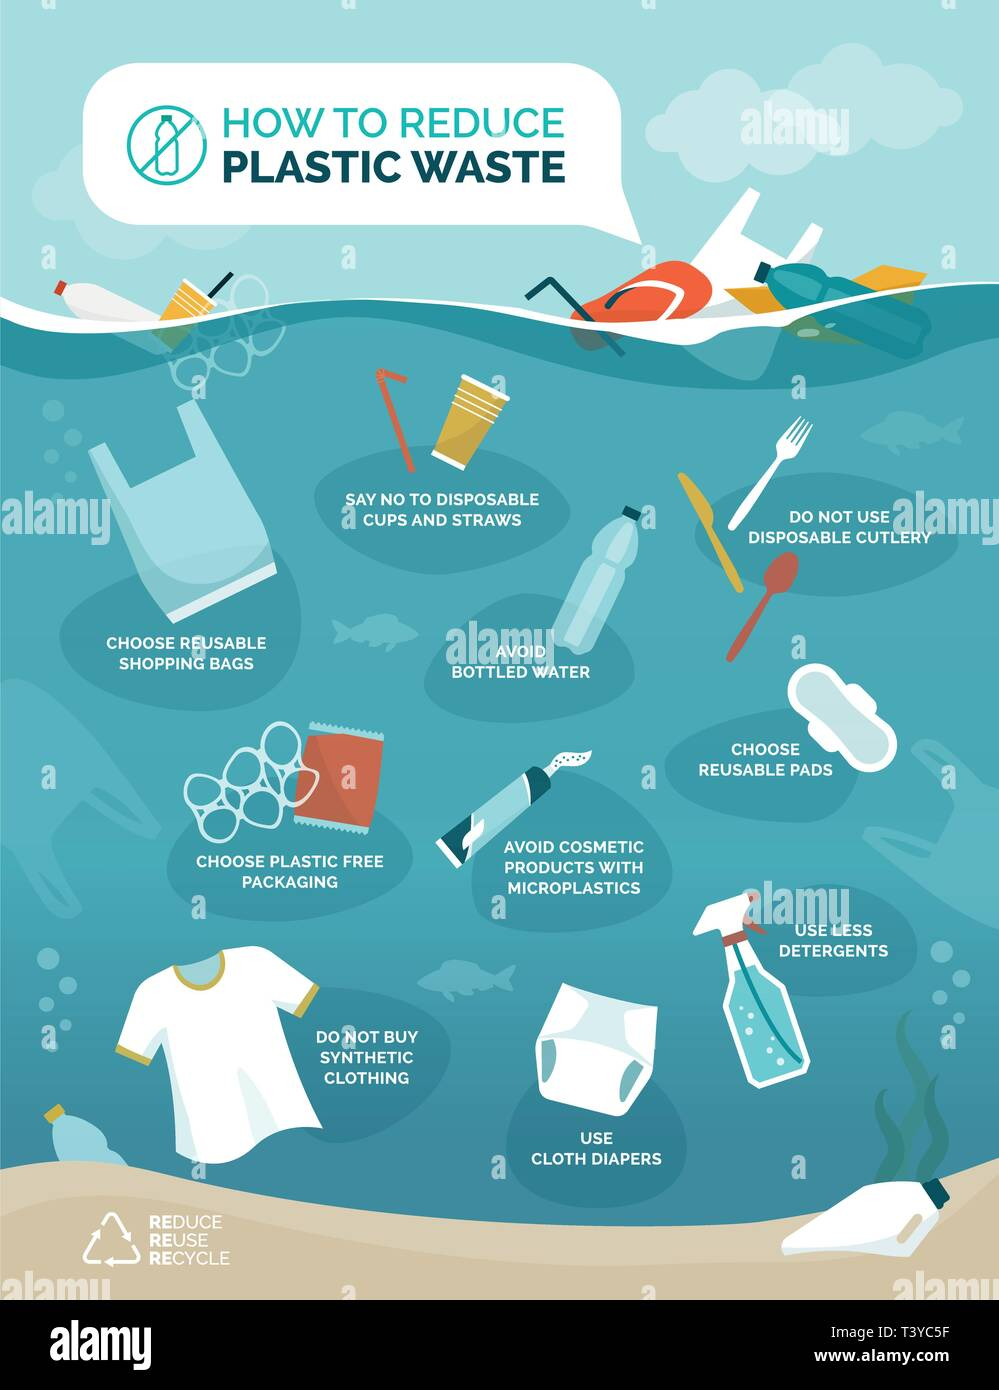 How to reduce plastic pollution in our oceans infographic with floating objects polluting water, sustainability and environmental care concept - Stock Image